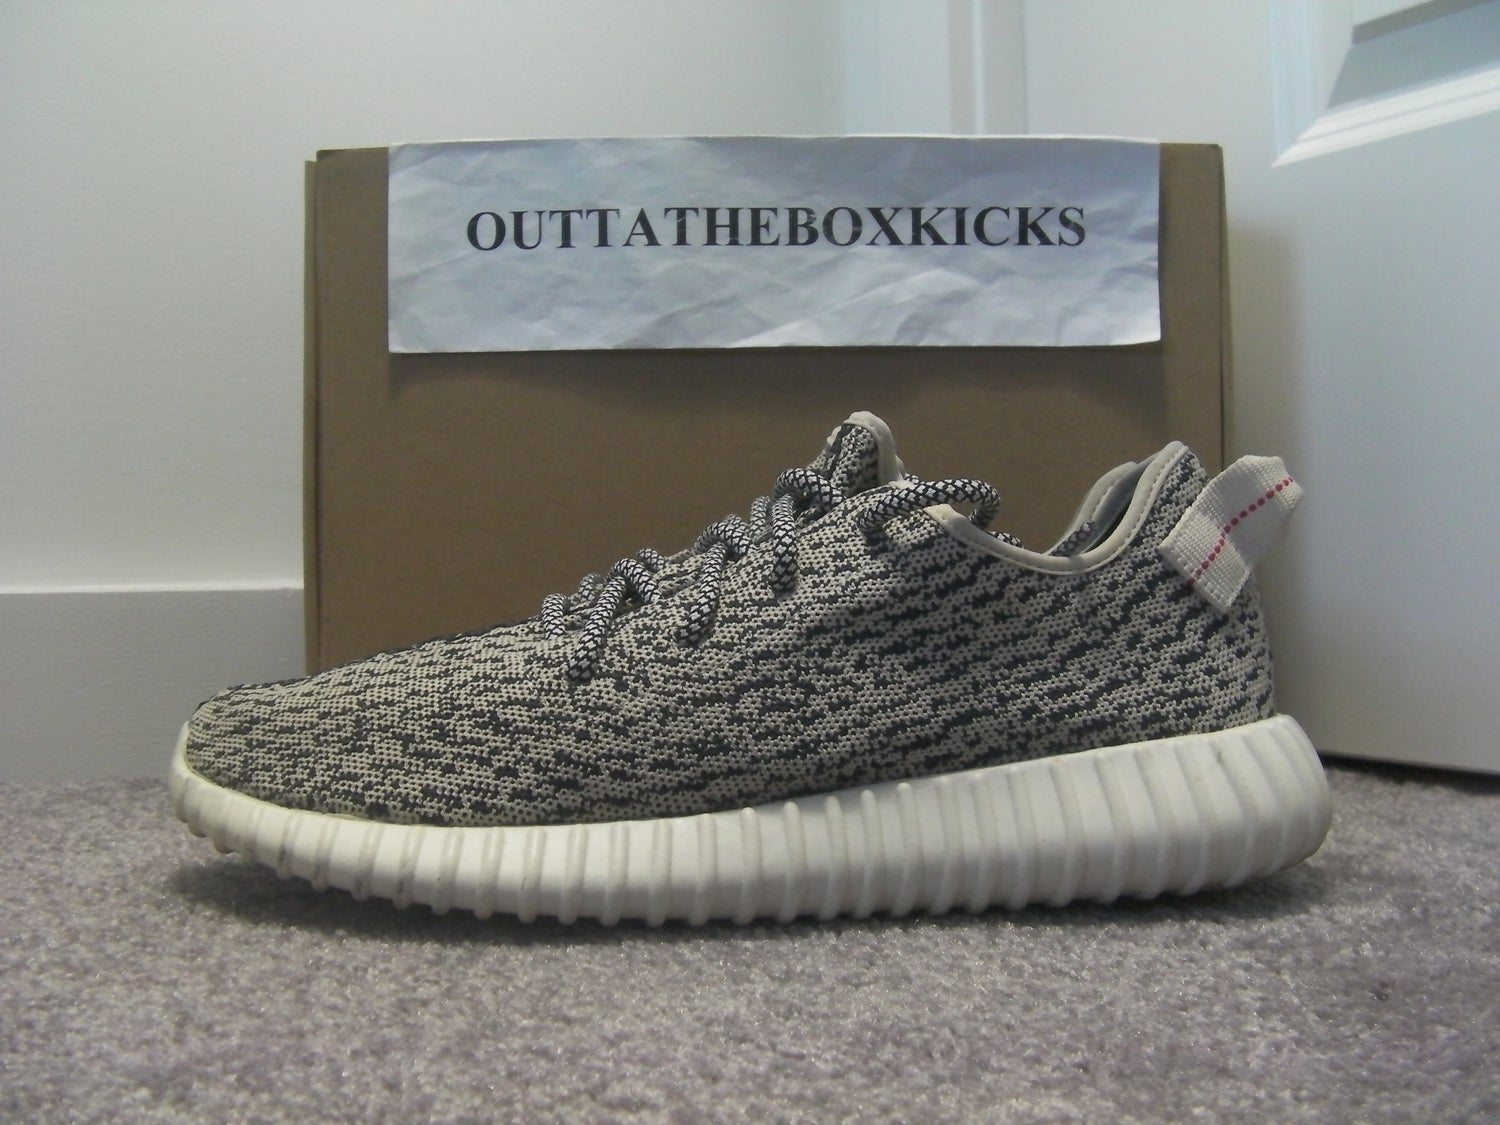 online retailer 44eb5 f217c Adidas Yeezy 350 Boost Turtle Dove size 10. Sold Out